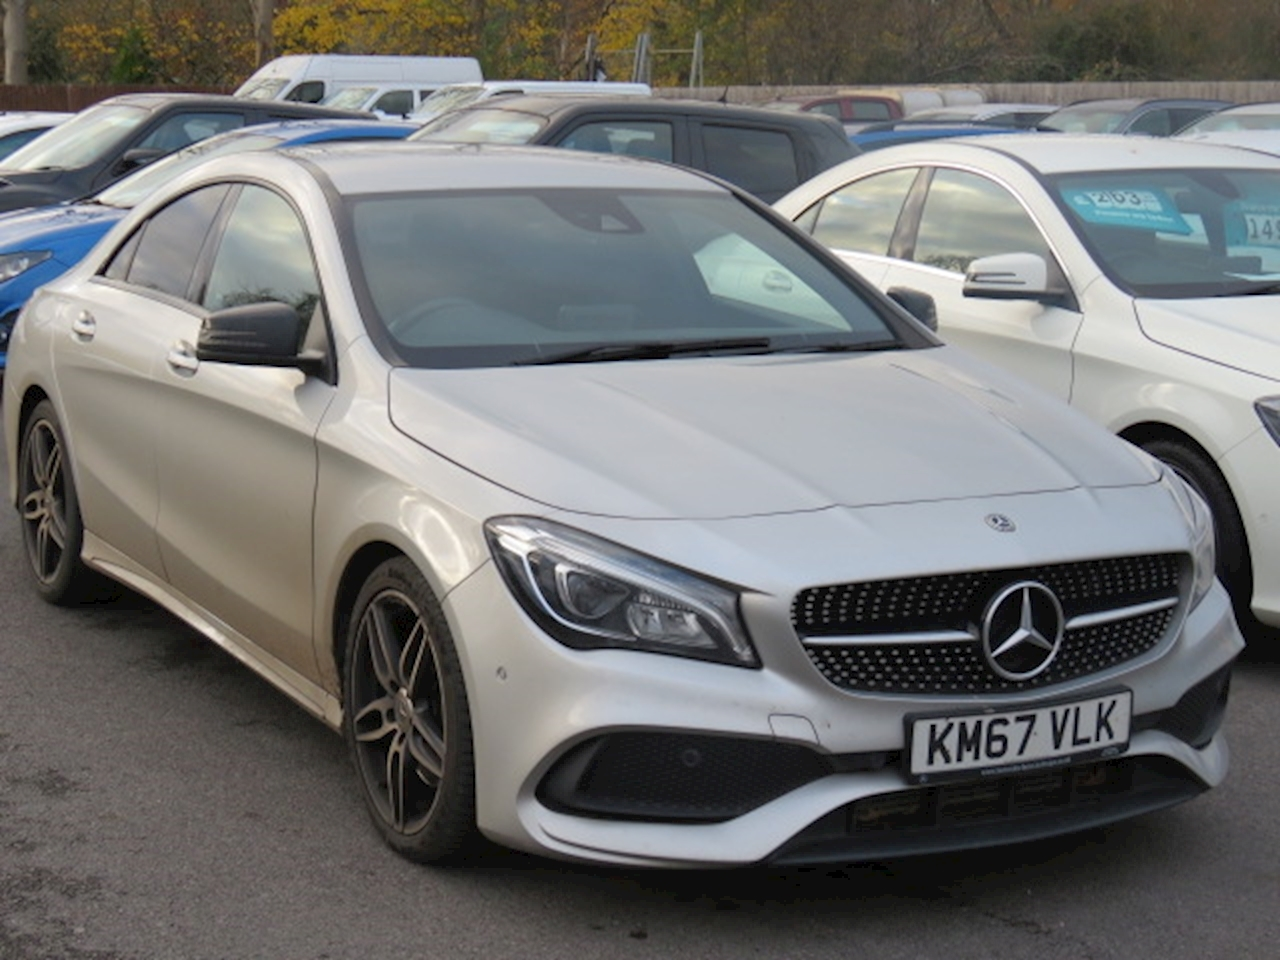 Mercedes-Benz CLA Class AMG Line 2.1 4dr Coupe 7G-DCT Diesel